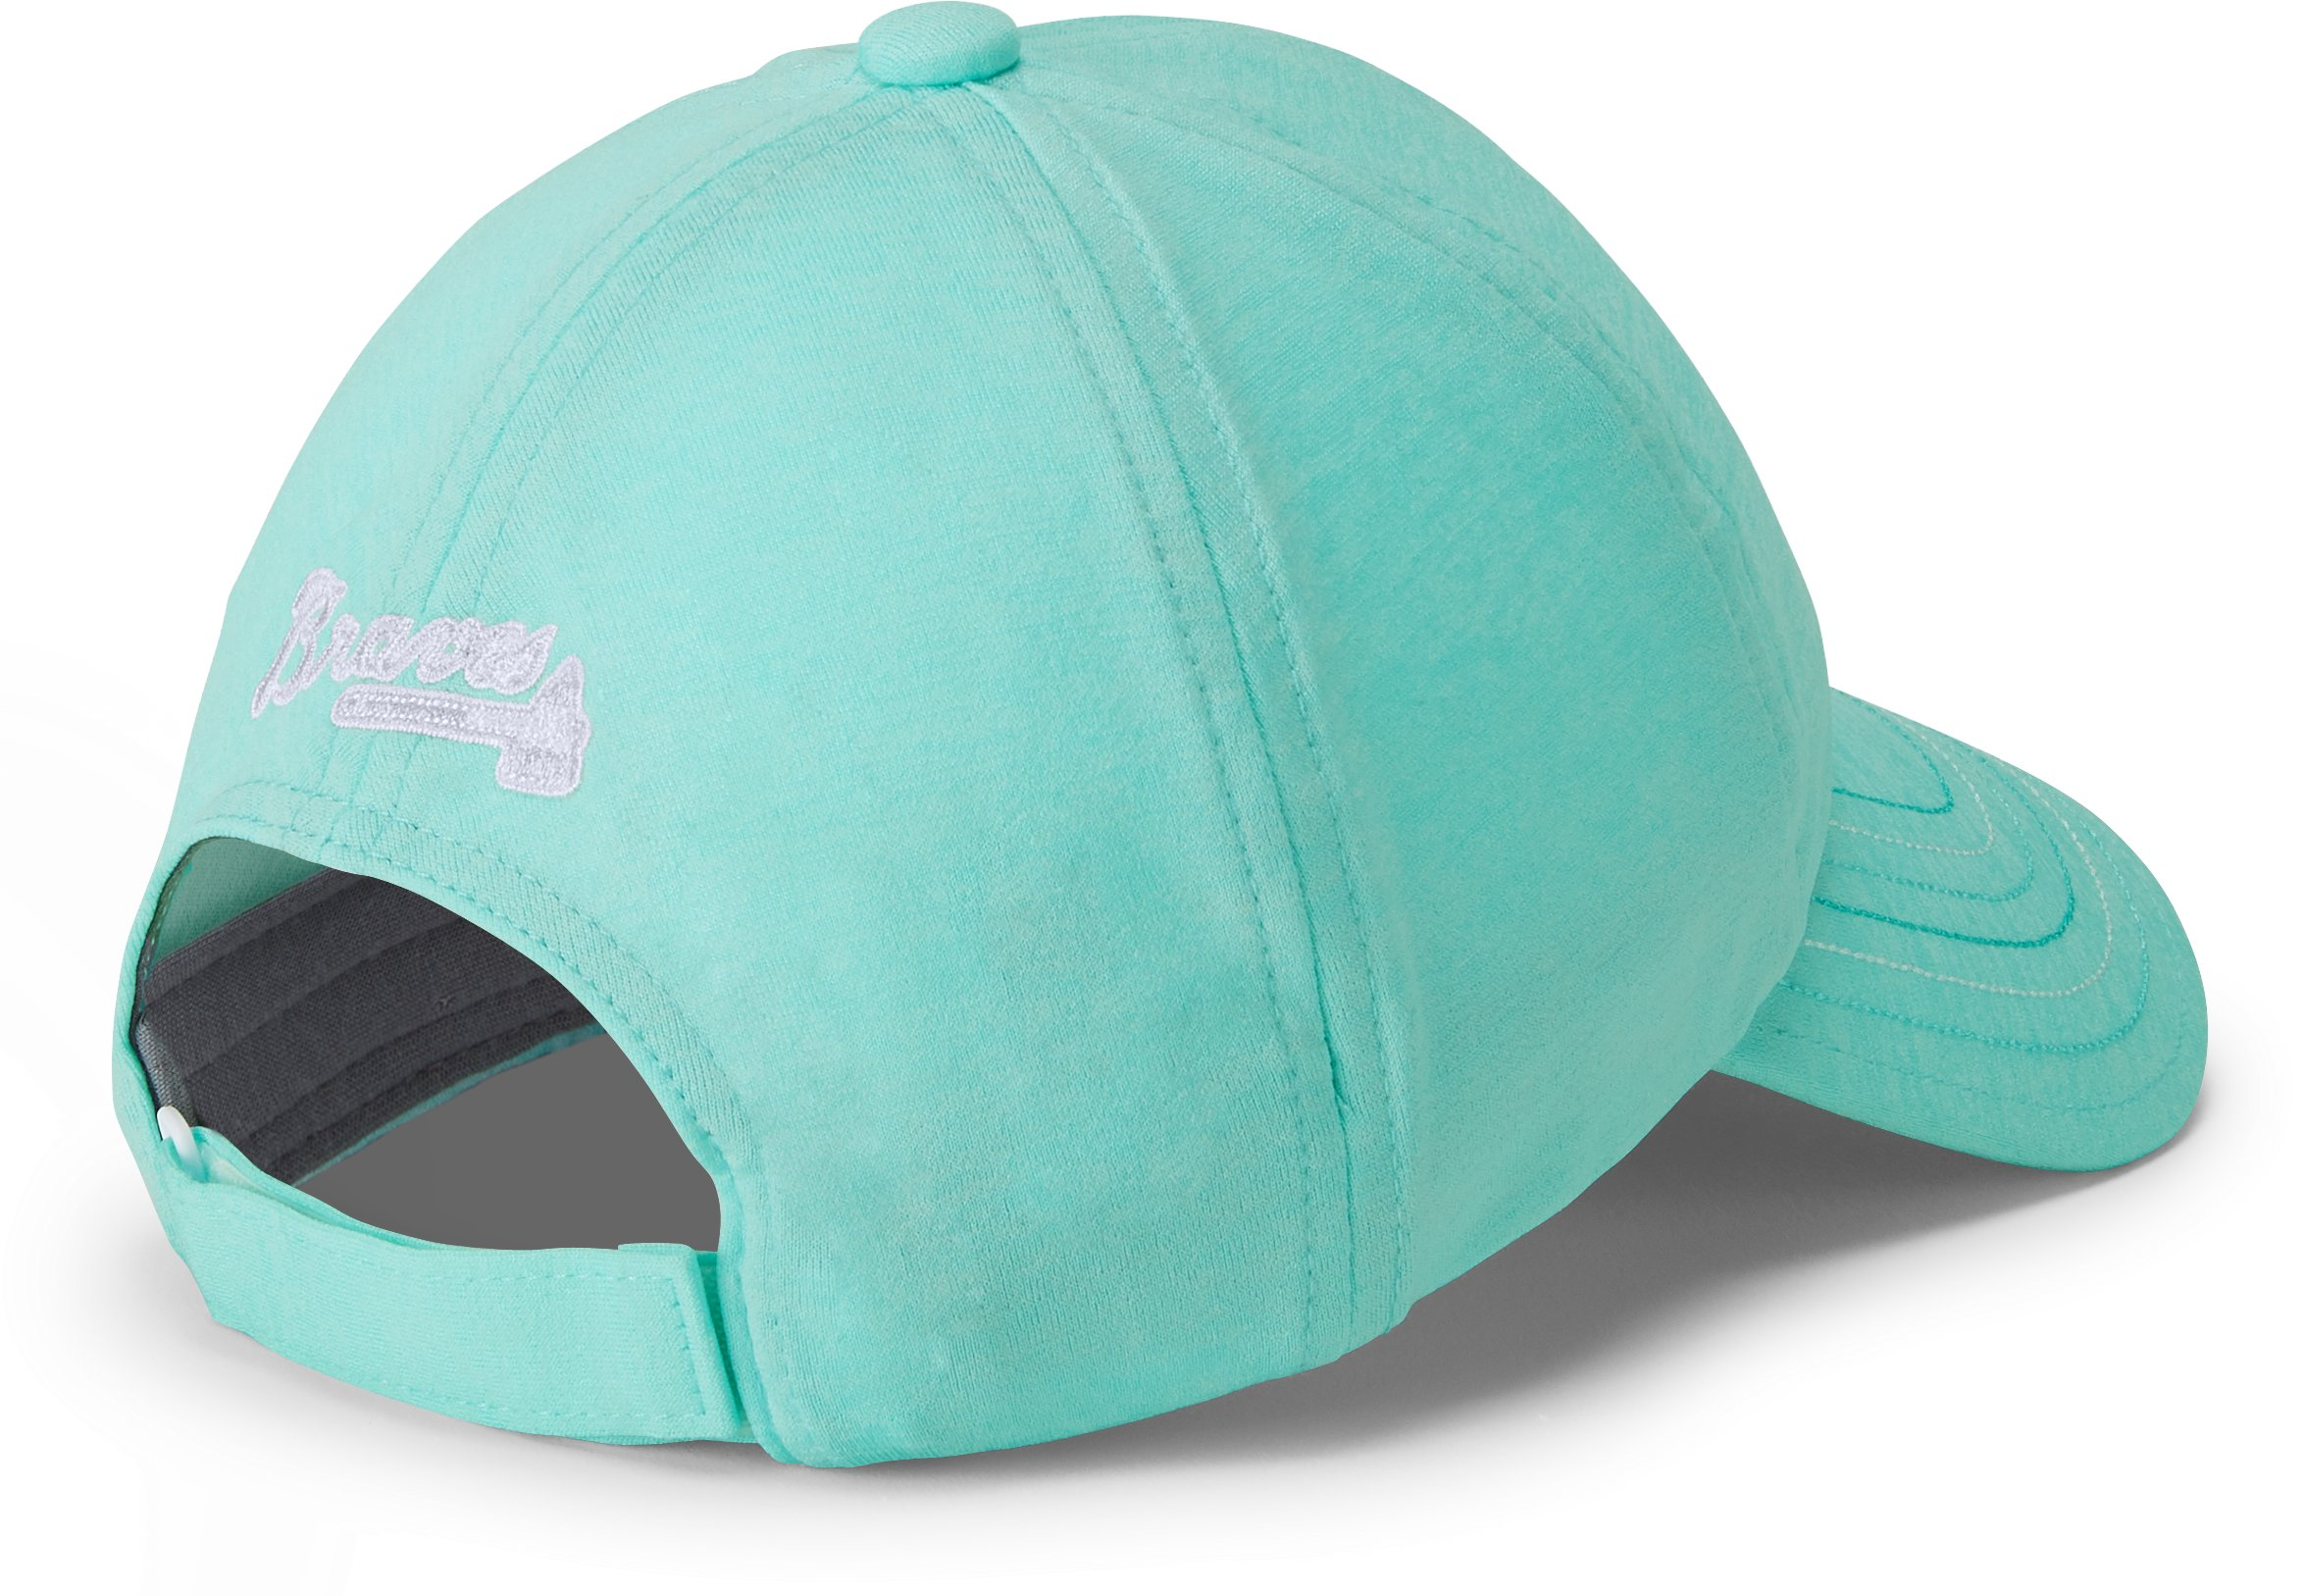 Girls' MLB Renegade Twist Cap, TROPICAL TIDE FADE HEATHER, undefined